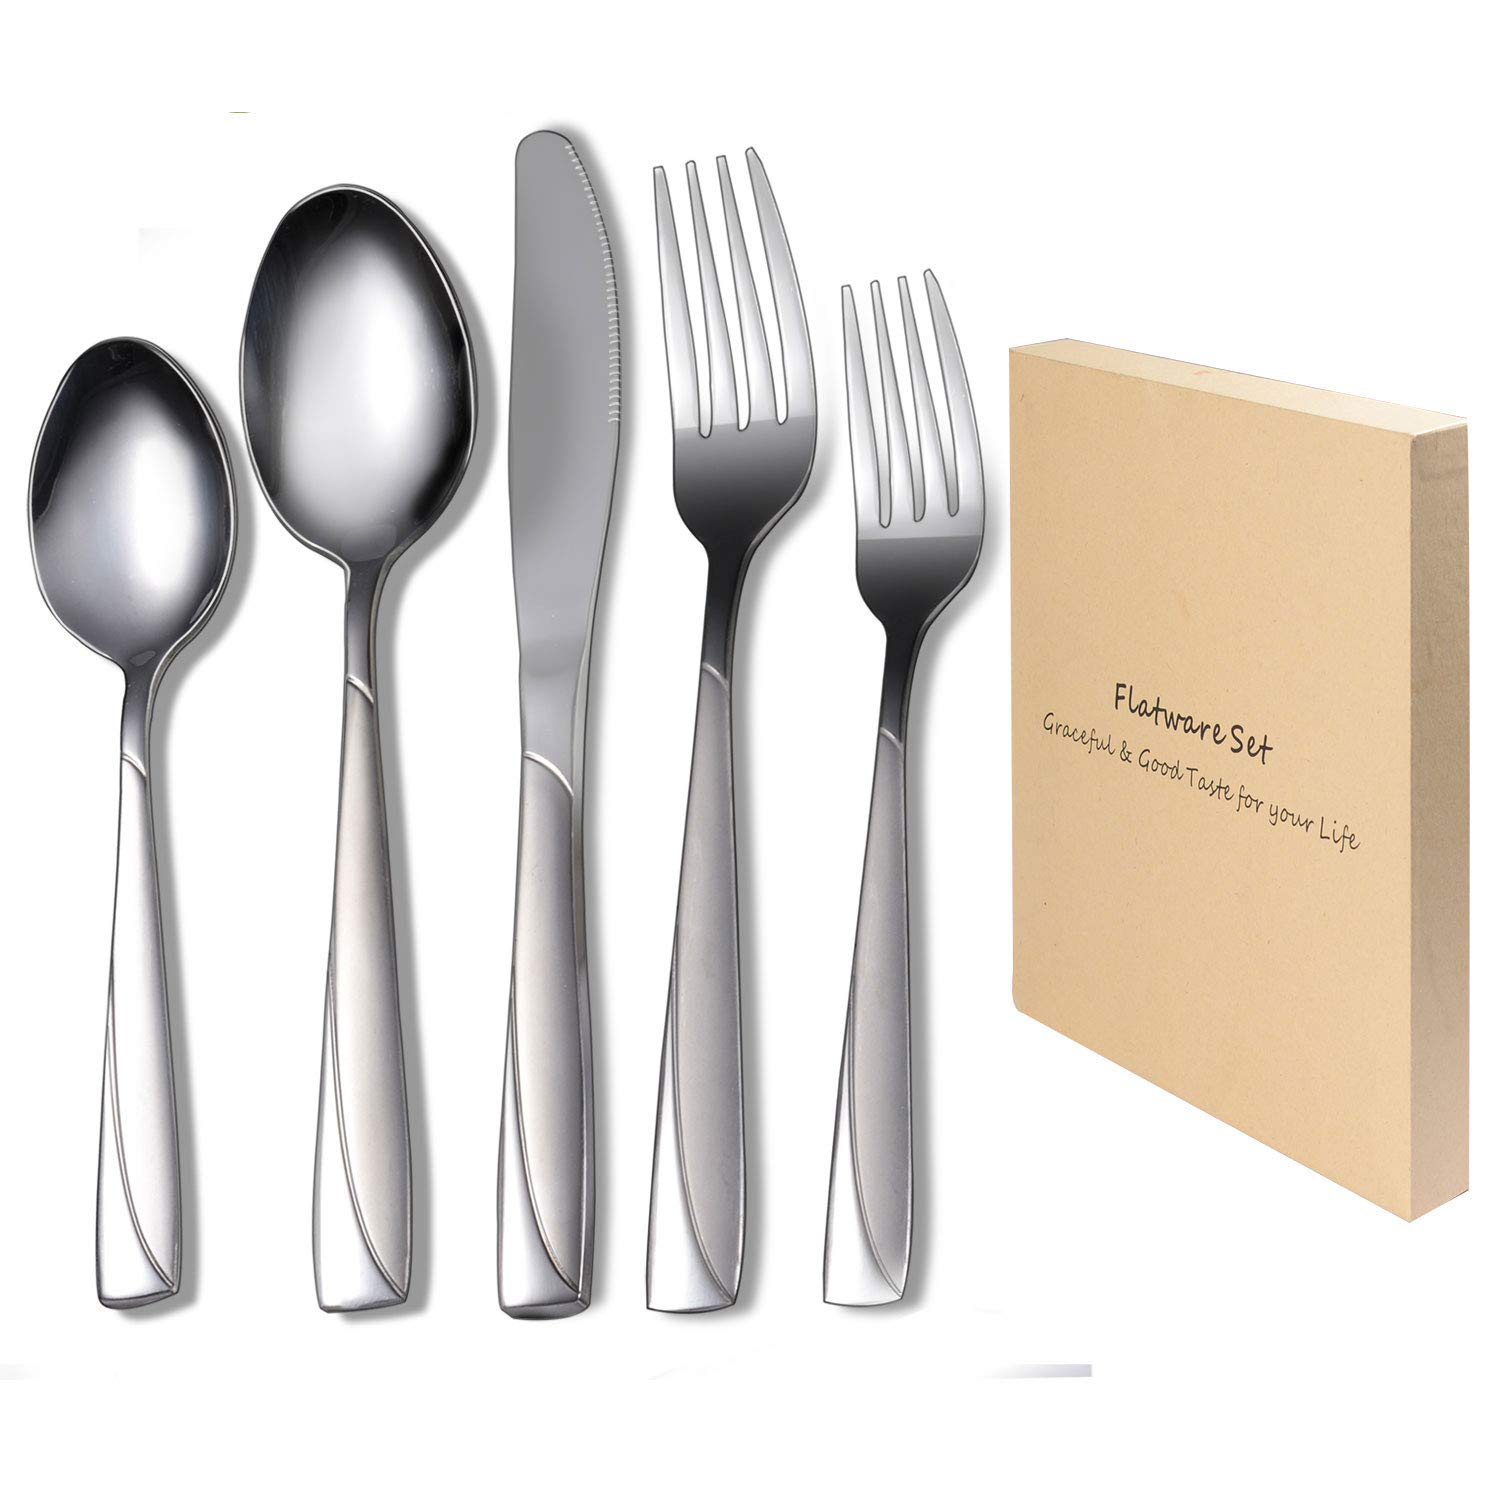 Flatware Set, VKEEW Silverware Set Stainless Steel Cutlery Set Home Kitchen Hotel Restaurant Wedding Tableware, Dishwasher Safe (Silver, 18/10 Steel,20pcs)